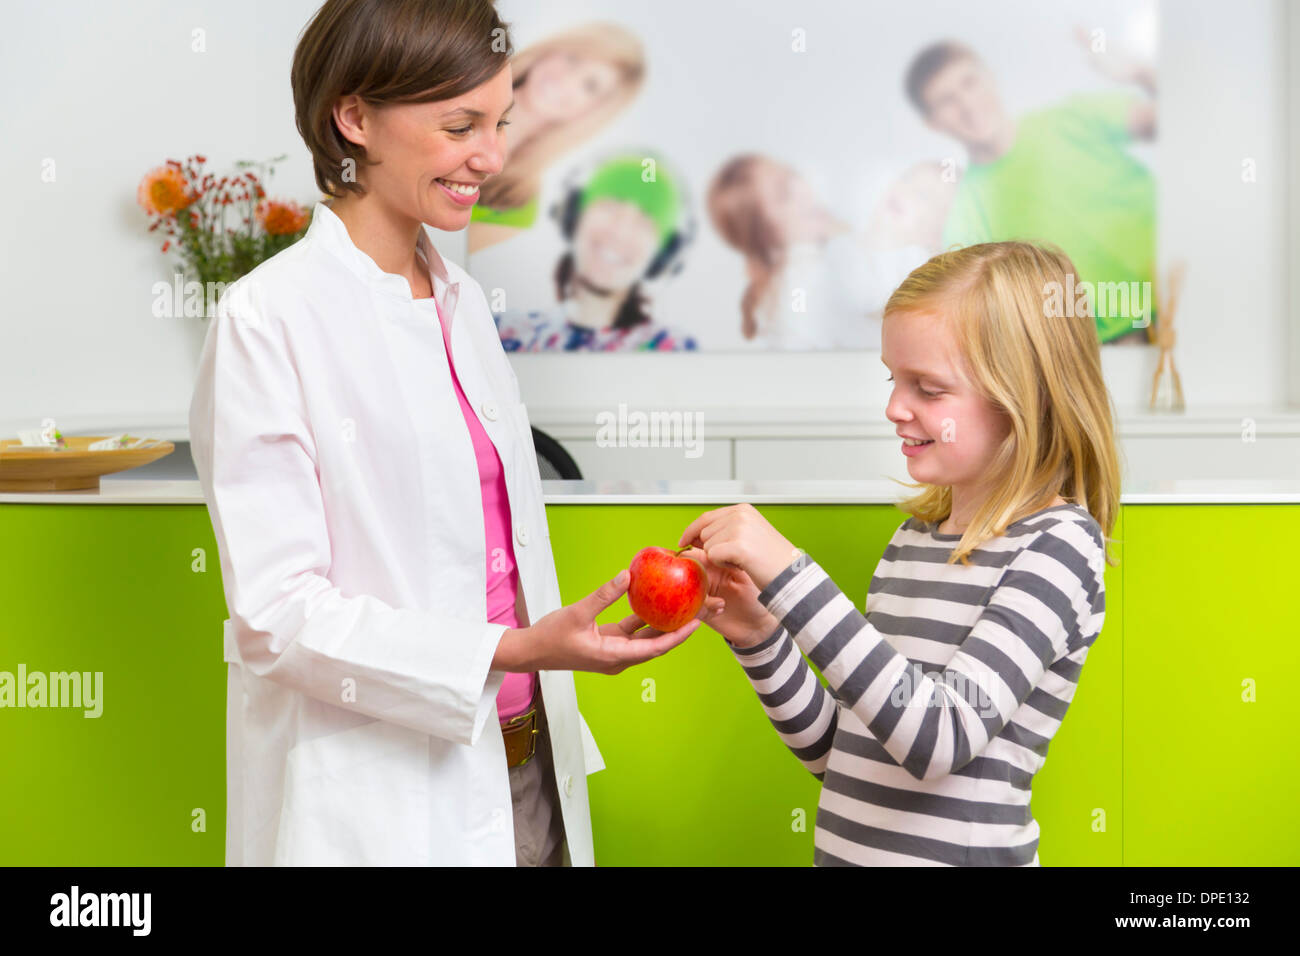 Jeune fille donnant dentiste apple en réception de la clinique dentaire Photo Stock